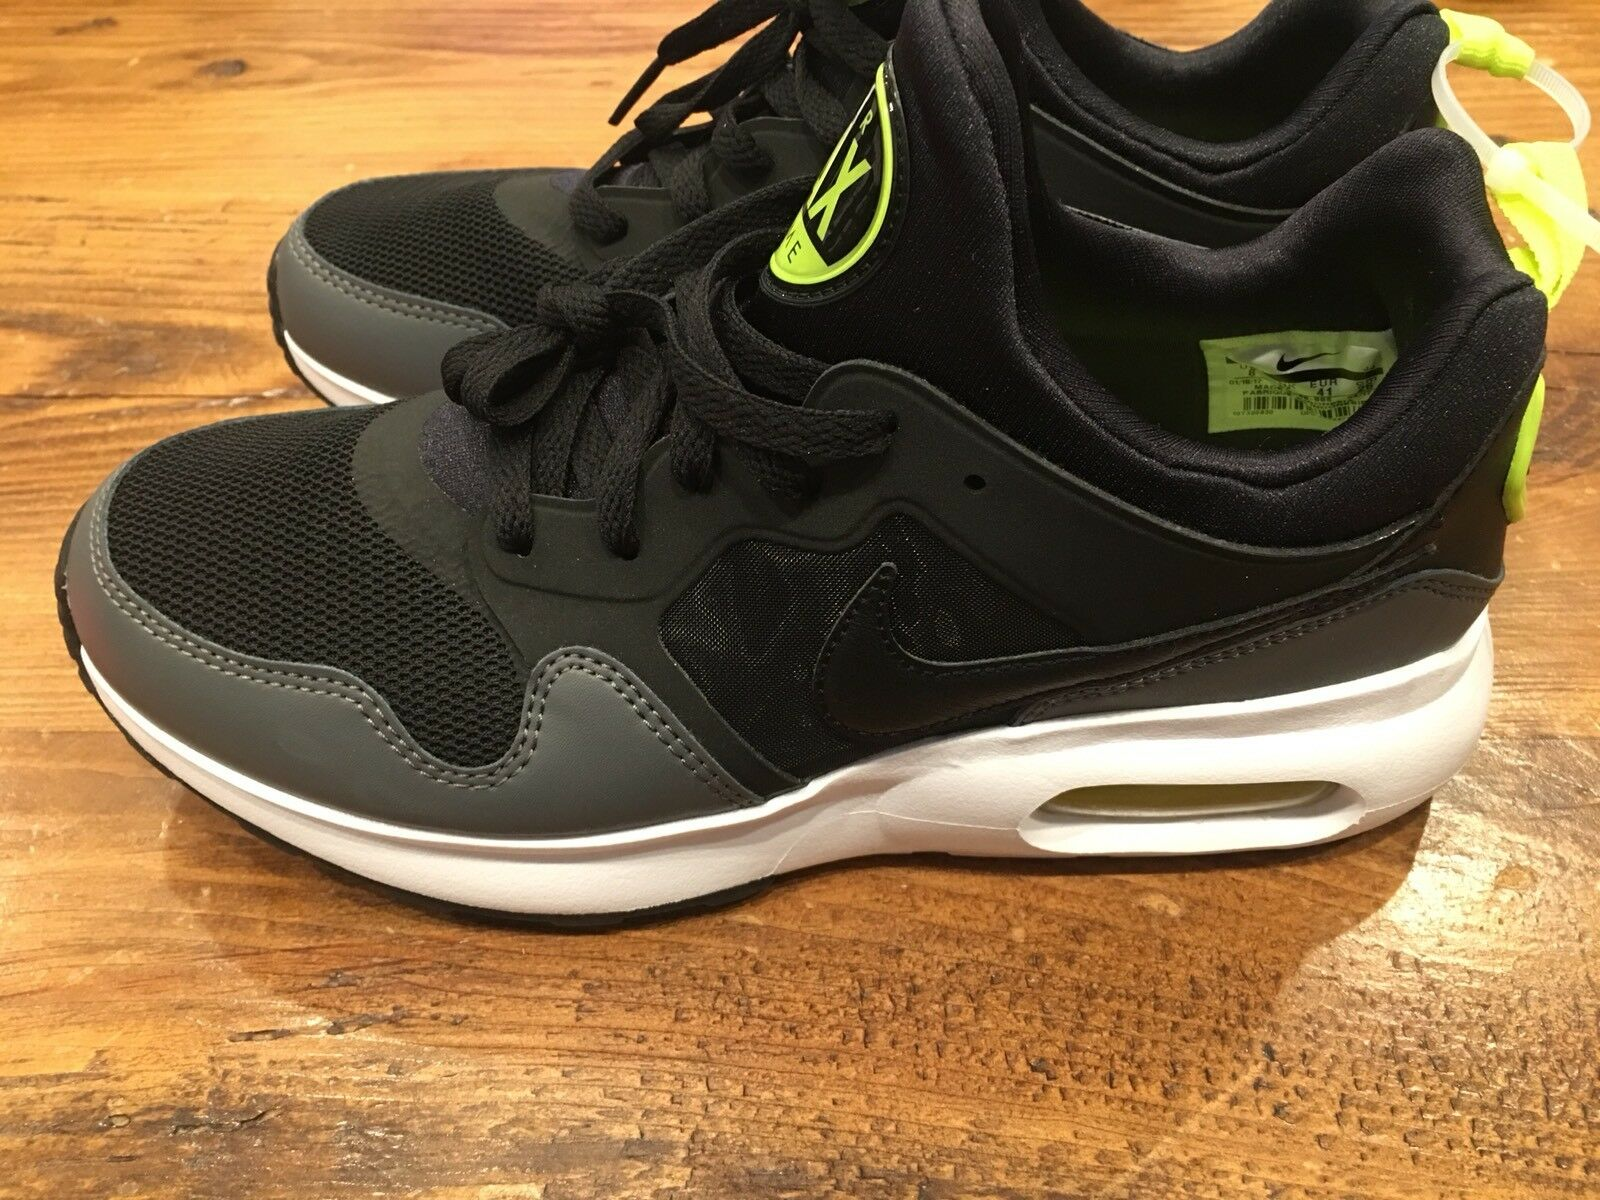 Men's Men's Men's Nike Air Max Prime Black shoes Sneakers - Size 8 cbe636